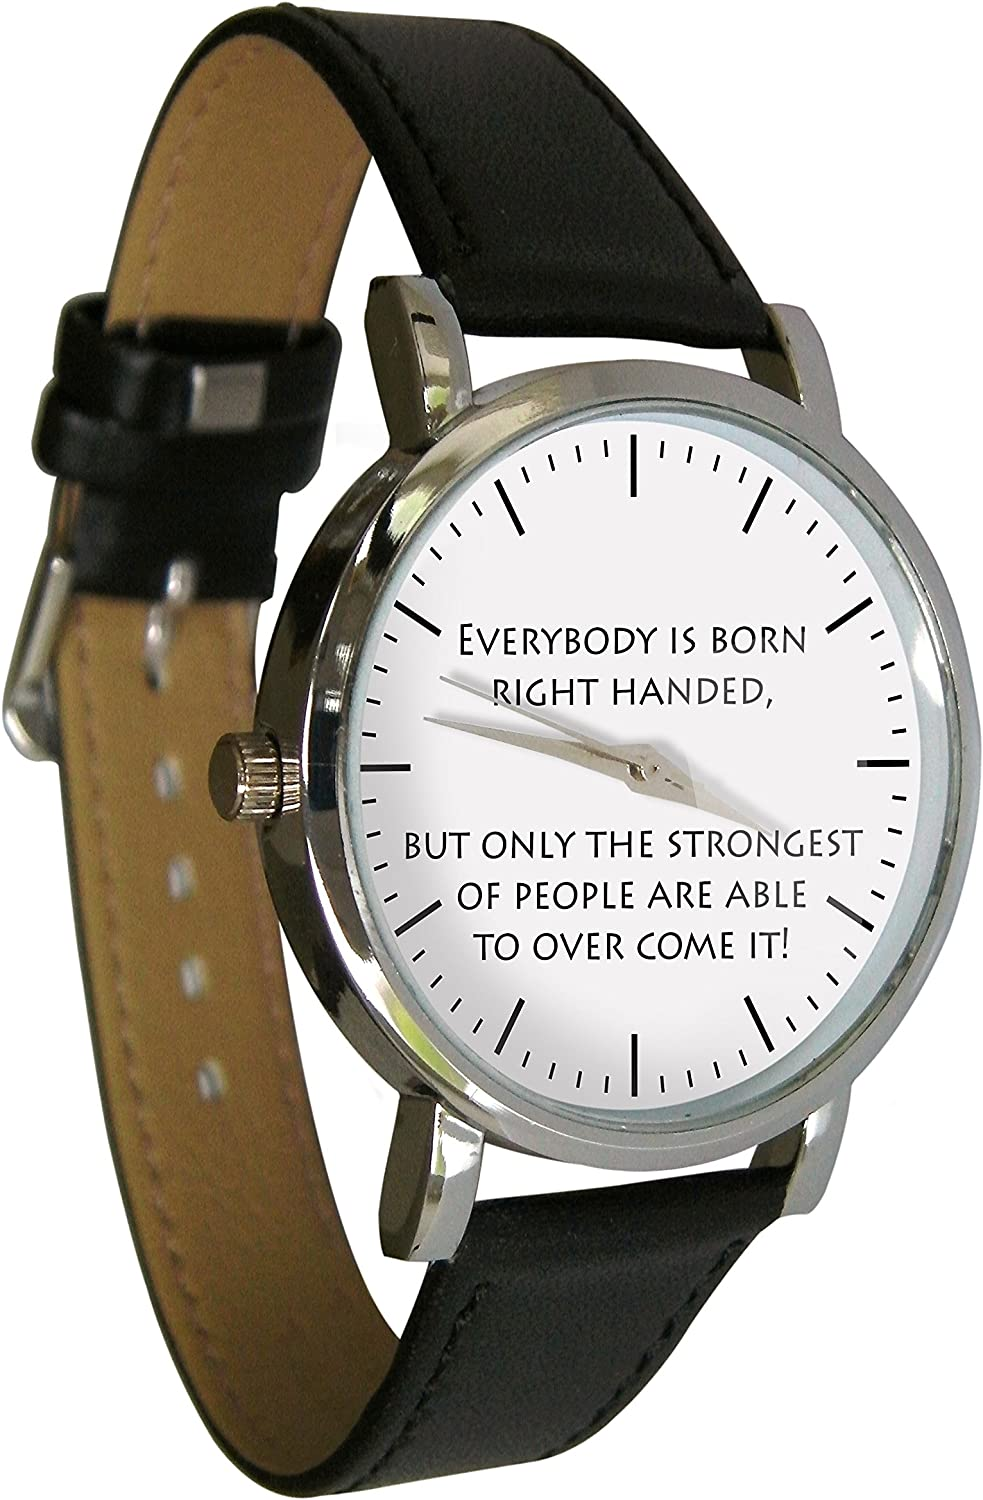 Unisex Left Handed Watch with Black Leather Band. Genuine Leather Strap